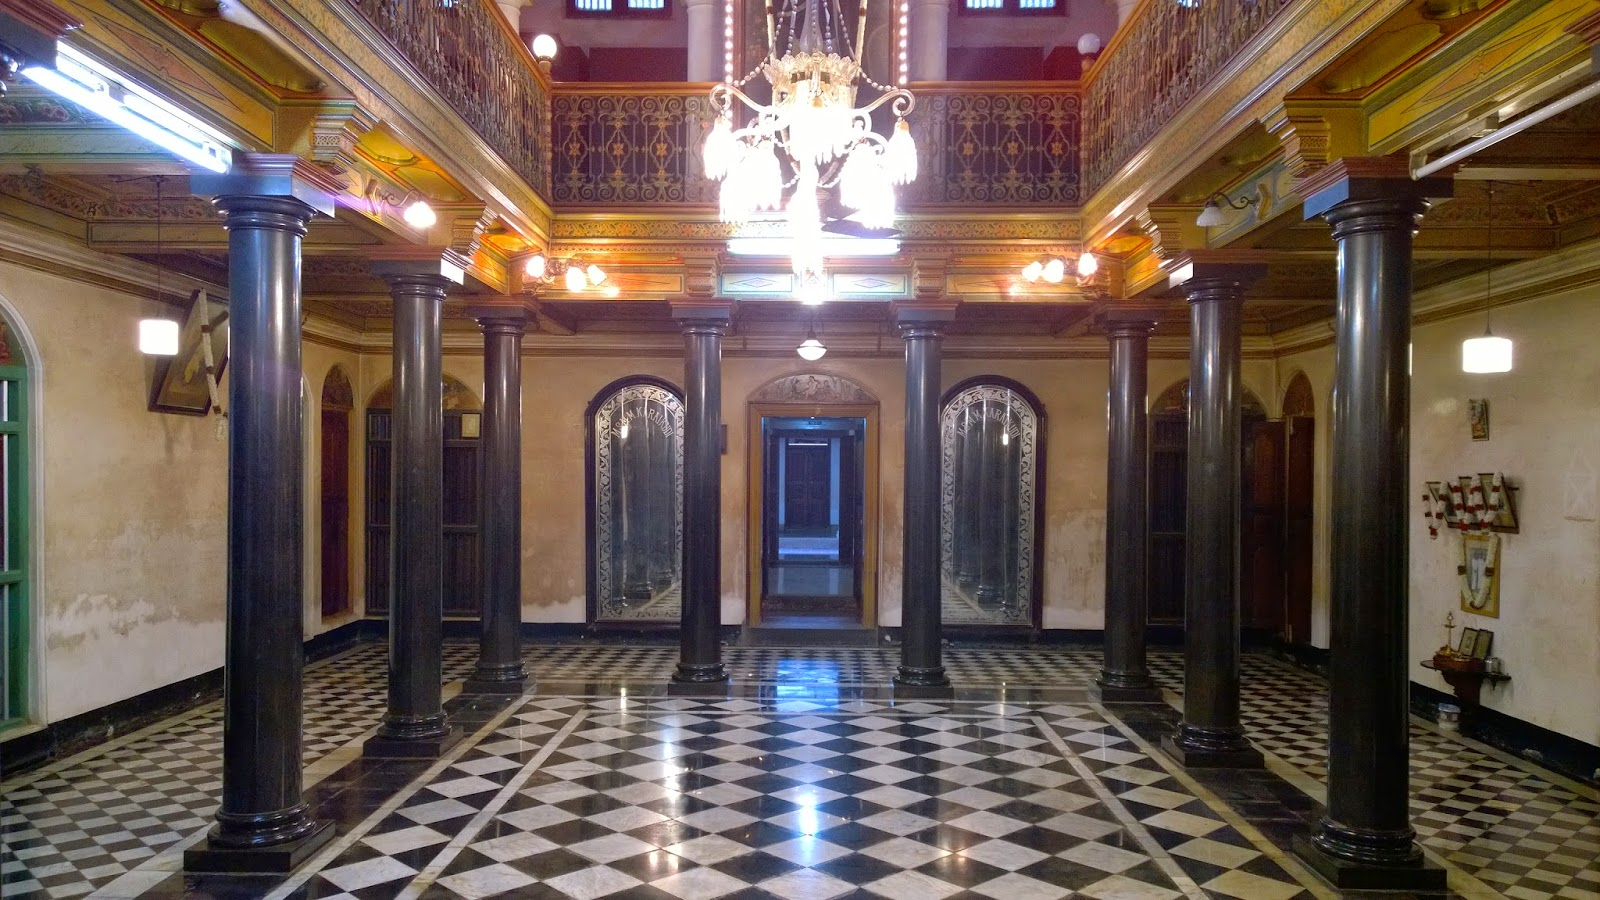 A Day and a Night in - Chettinad | Explore the world through a ...